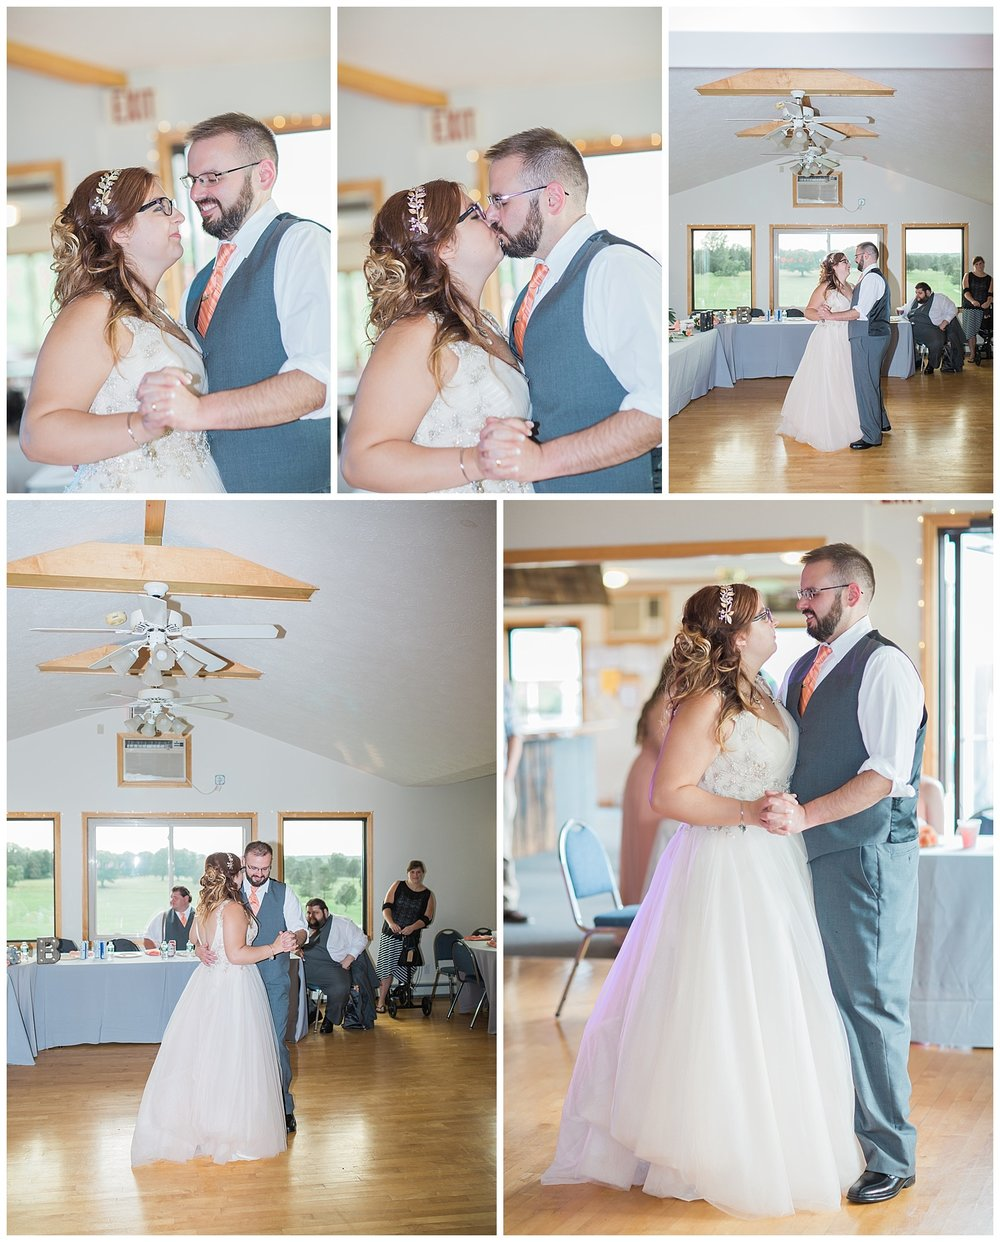 Brian and Molly Wed in Conesus NY - Lass & Beau-1147_Buffalo wedding photography.jpg